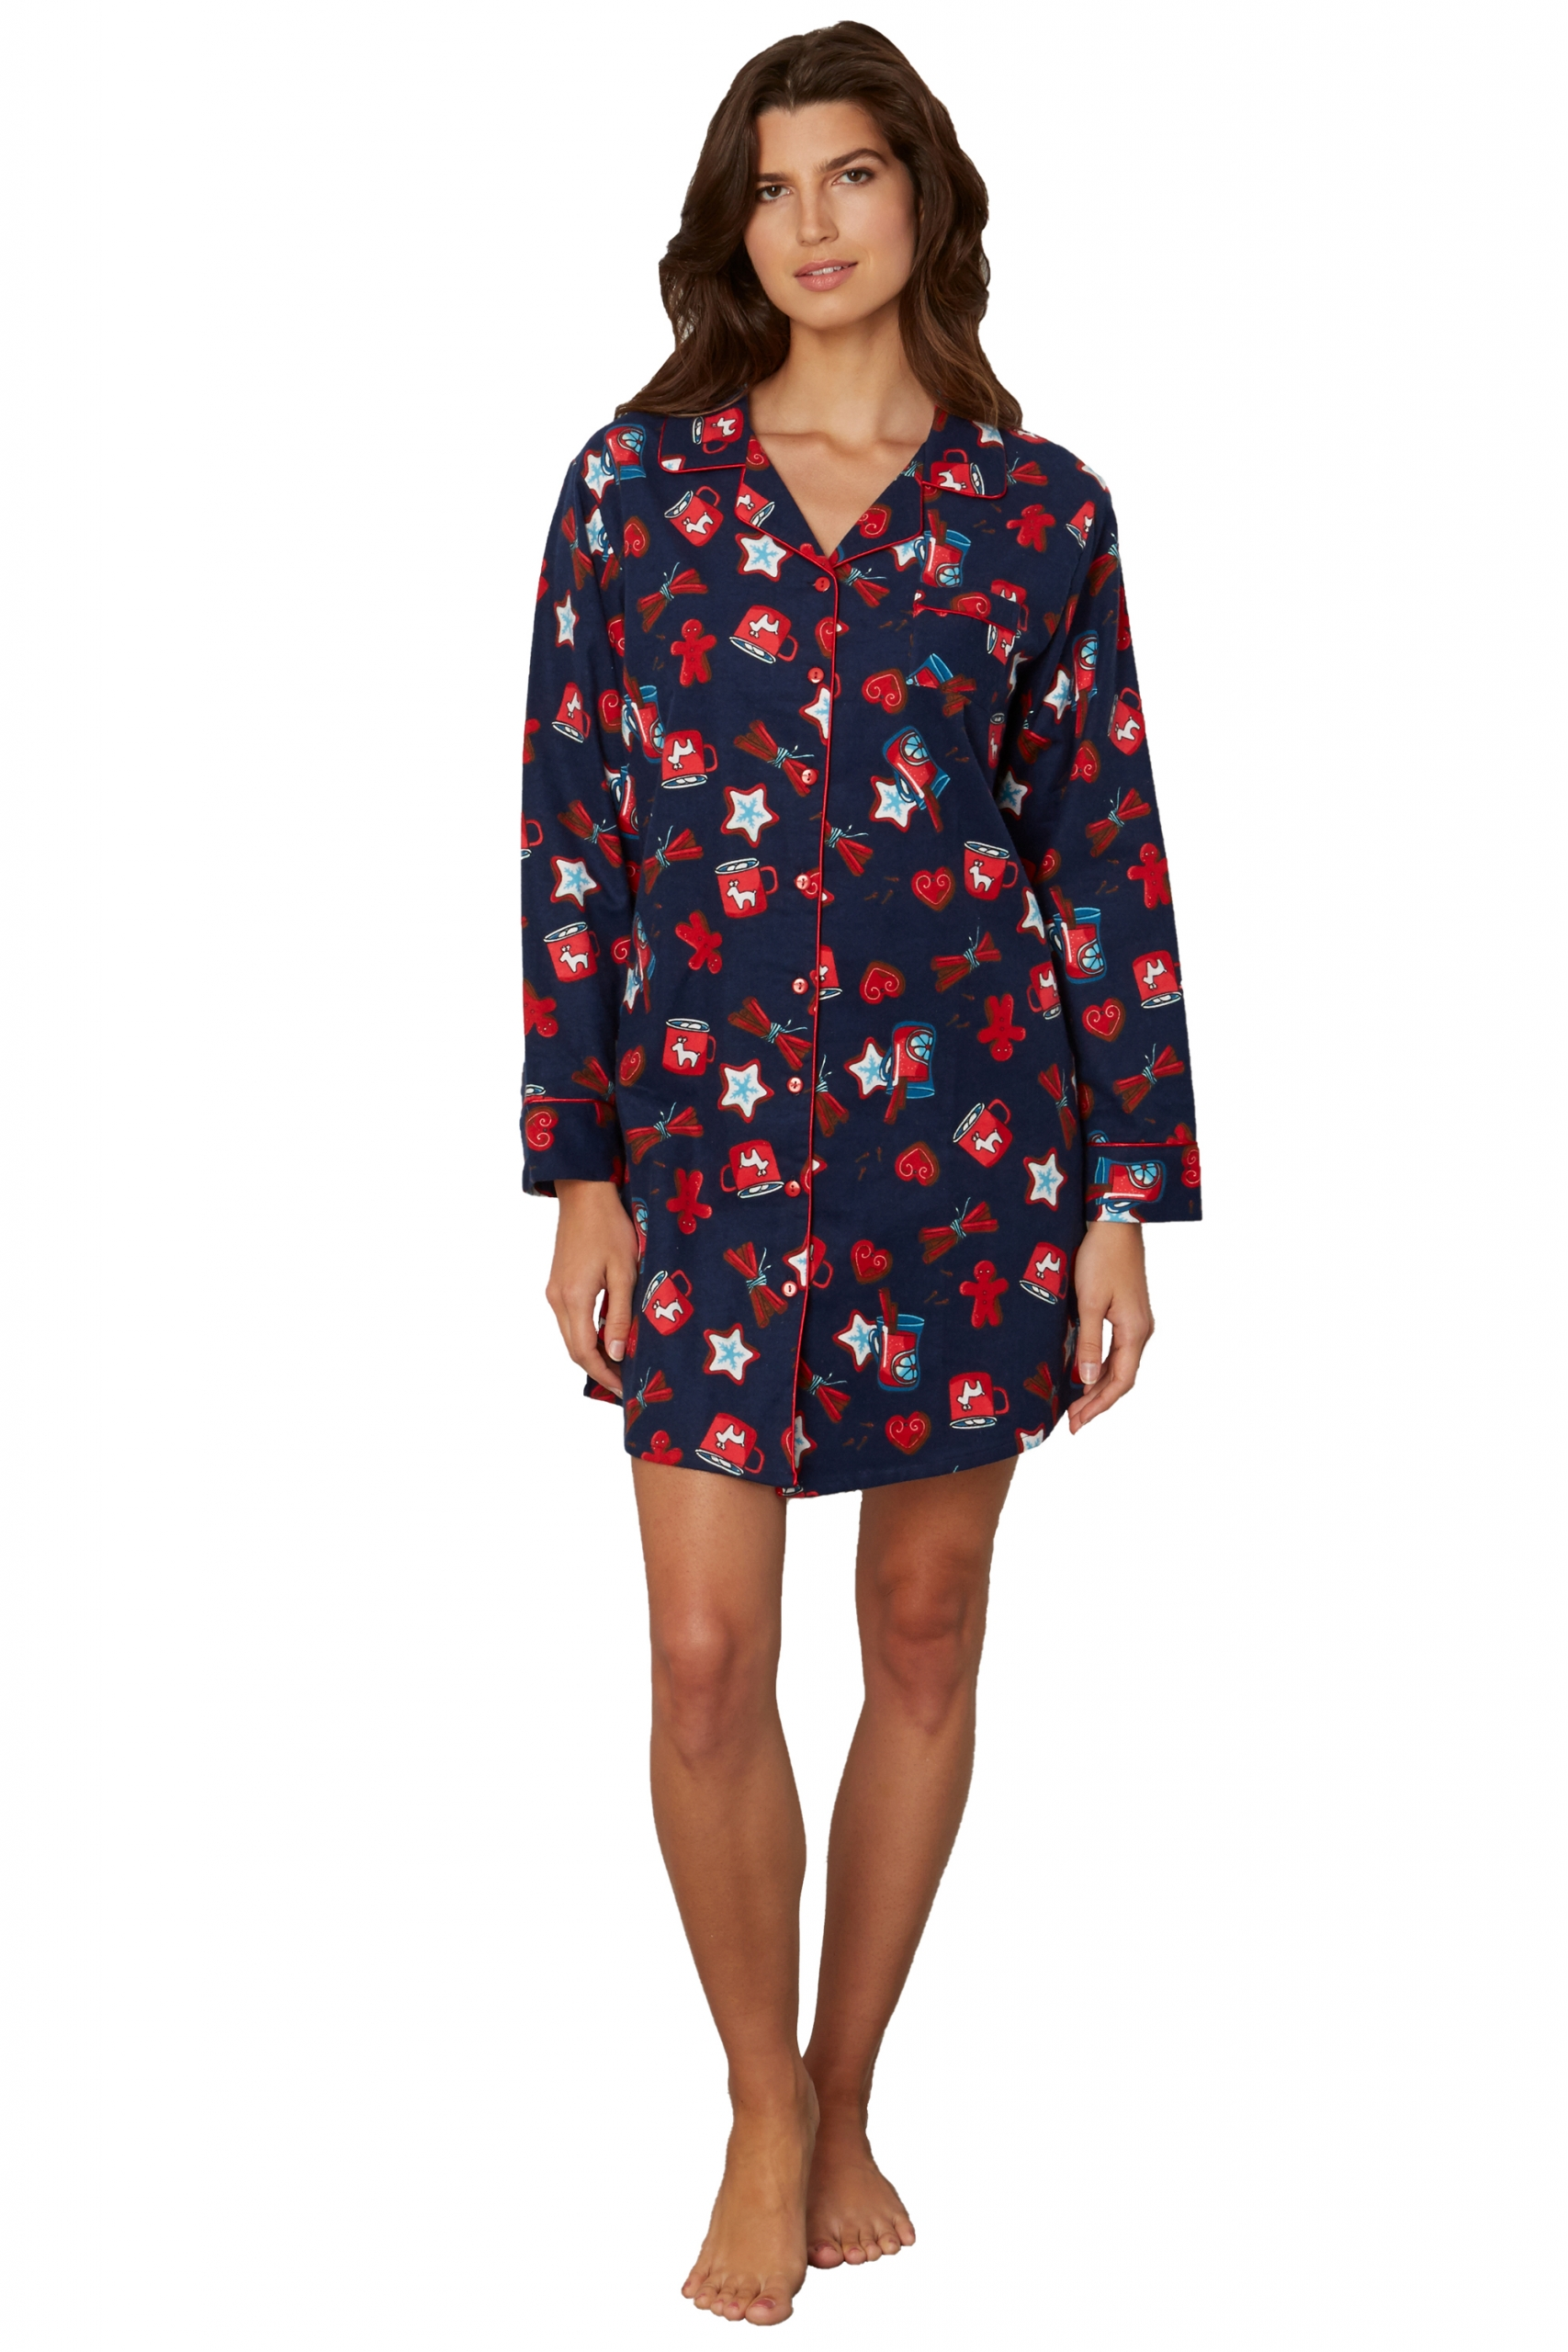 Kayanna Flannel Nightshirt